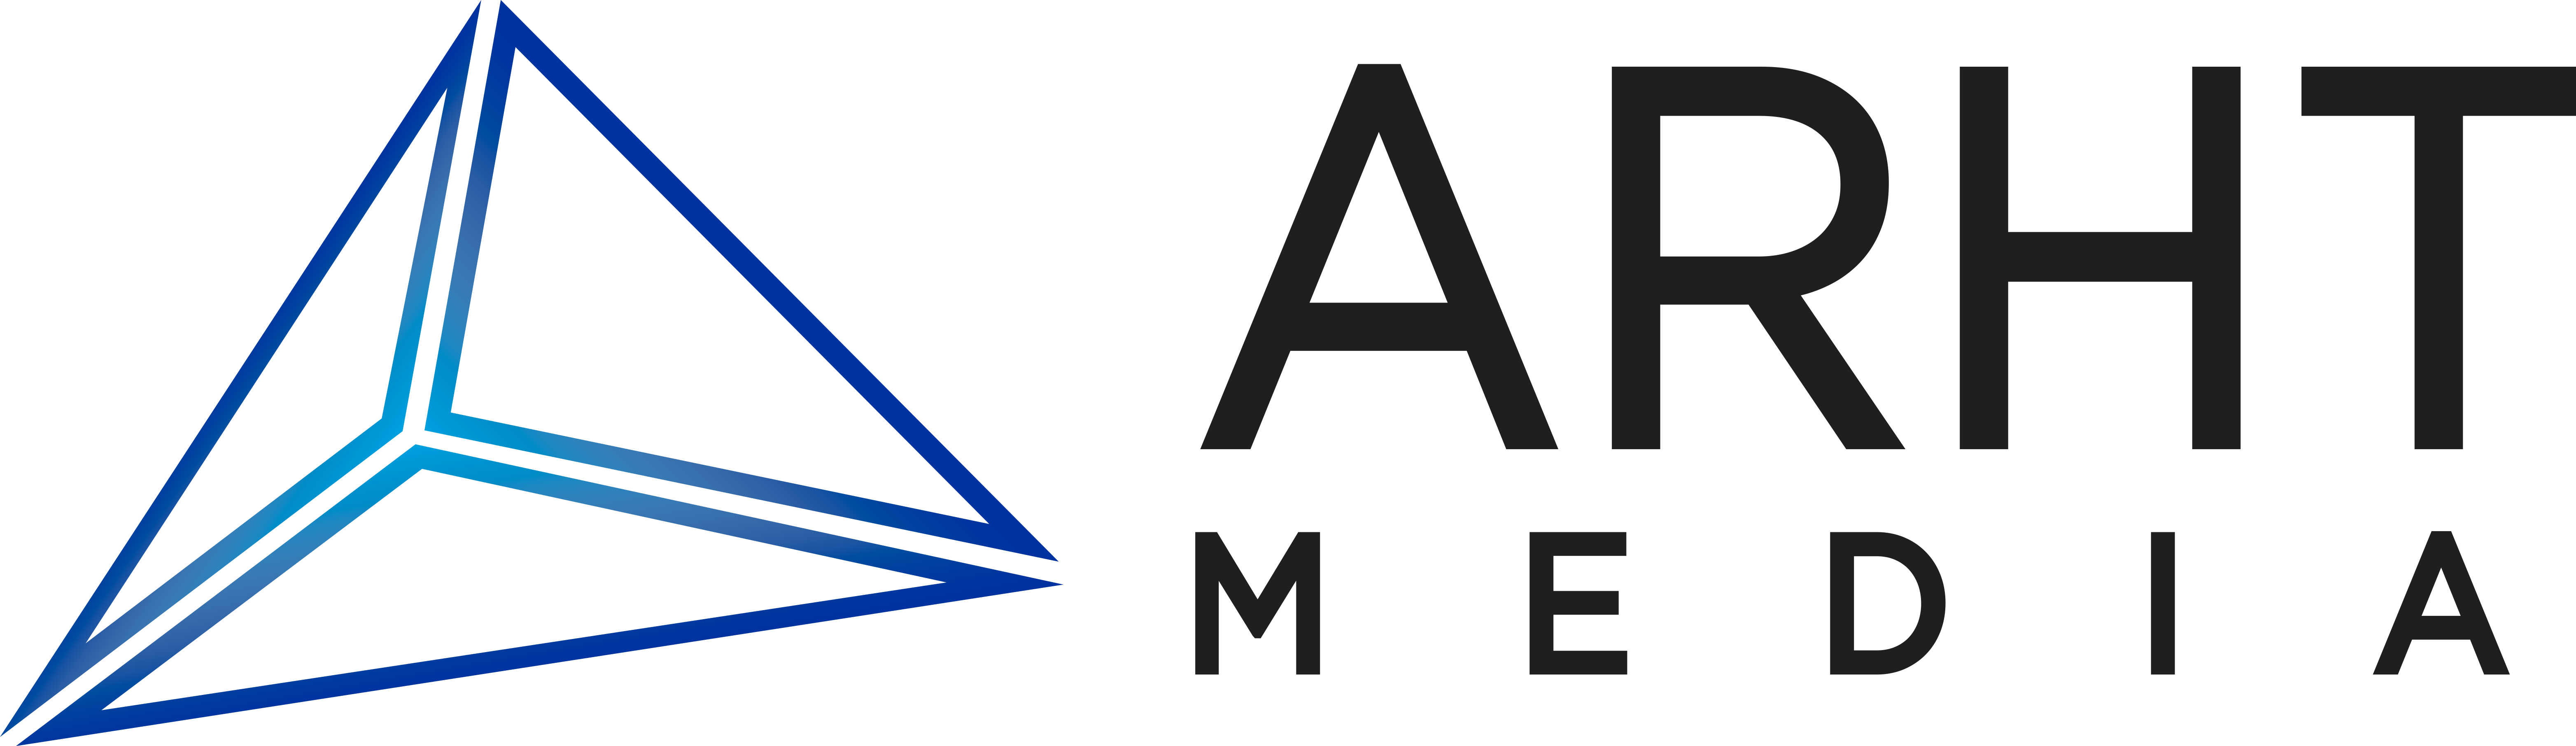 ARHT Media Strategic Partner Electronics & Engineering Pte Ltd To Open A Capture and Display Studio in Singapore To Meet Growing Demand in South East Asia